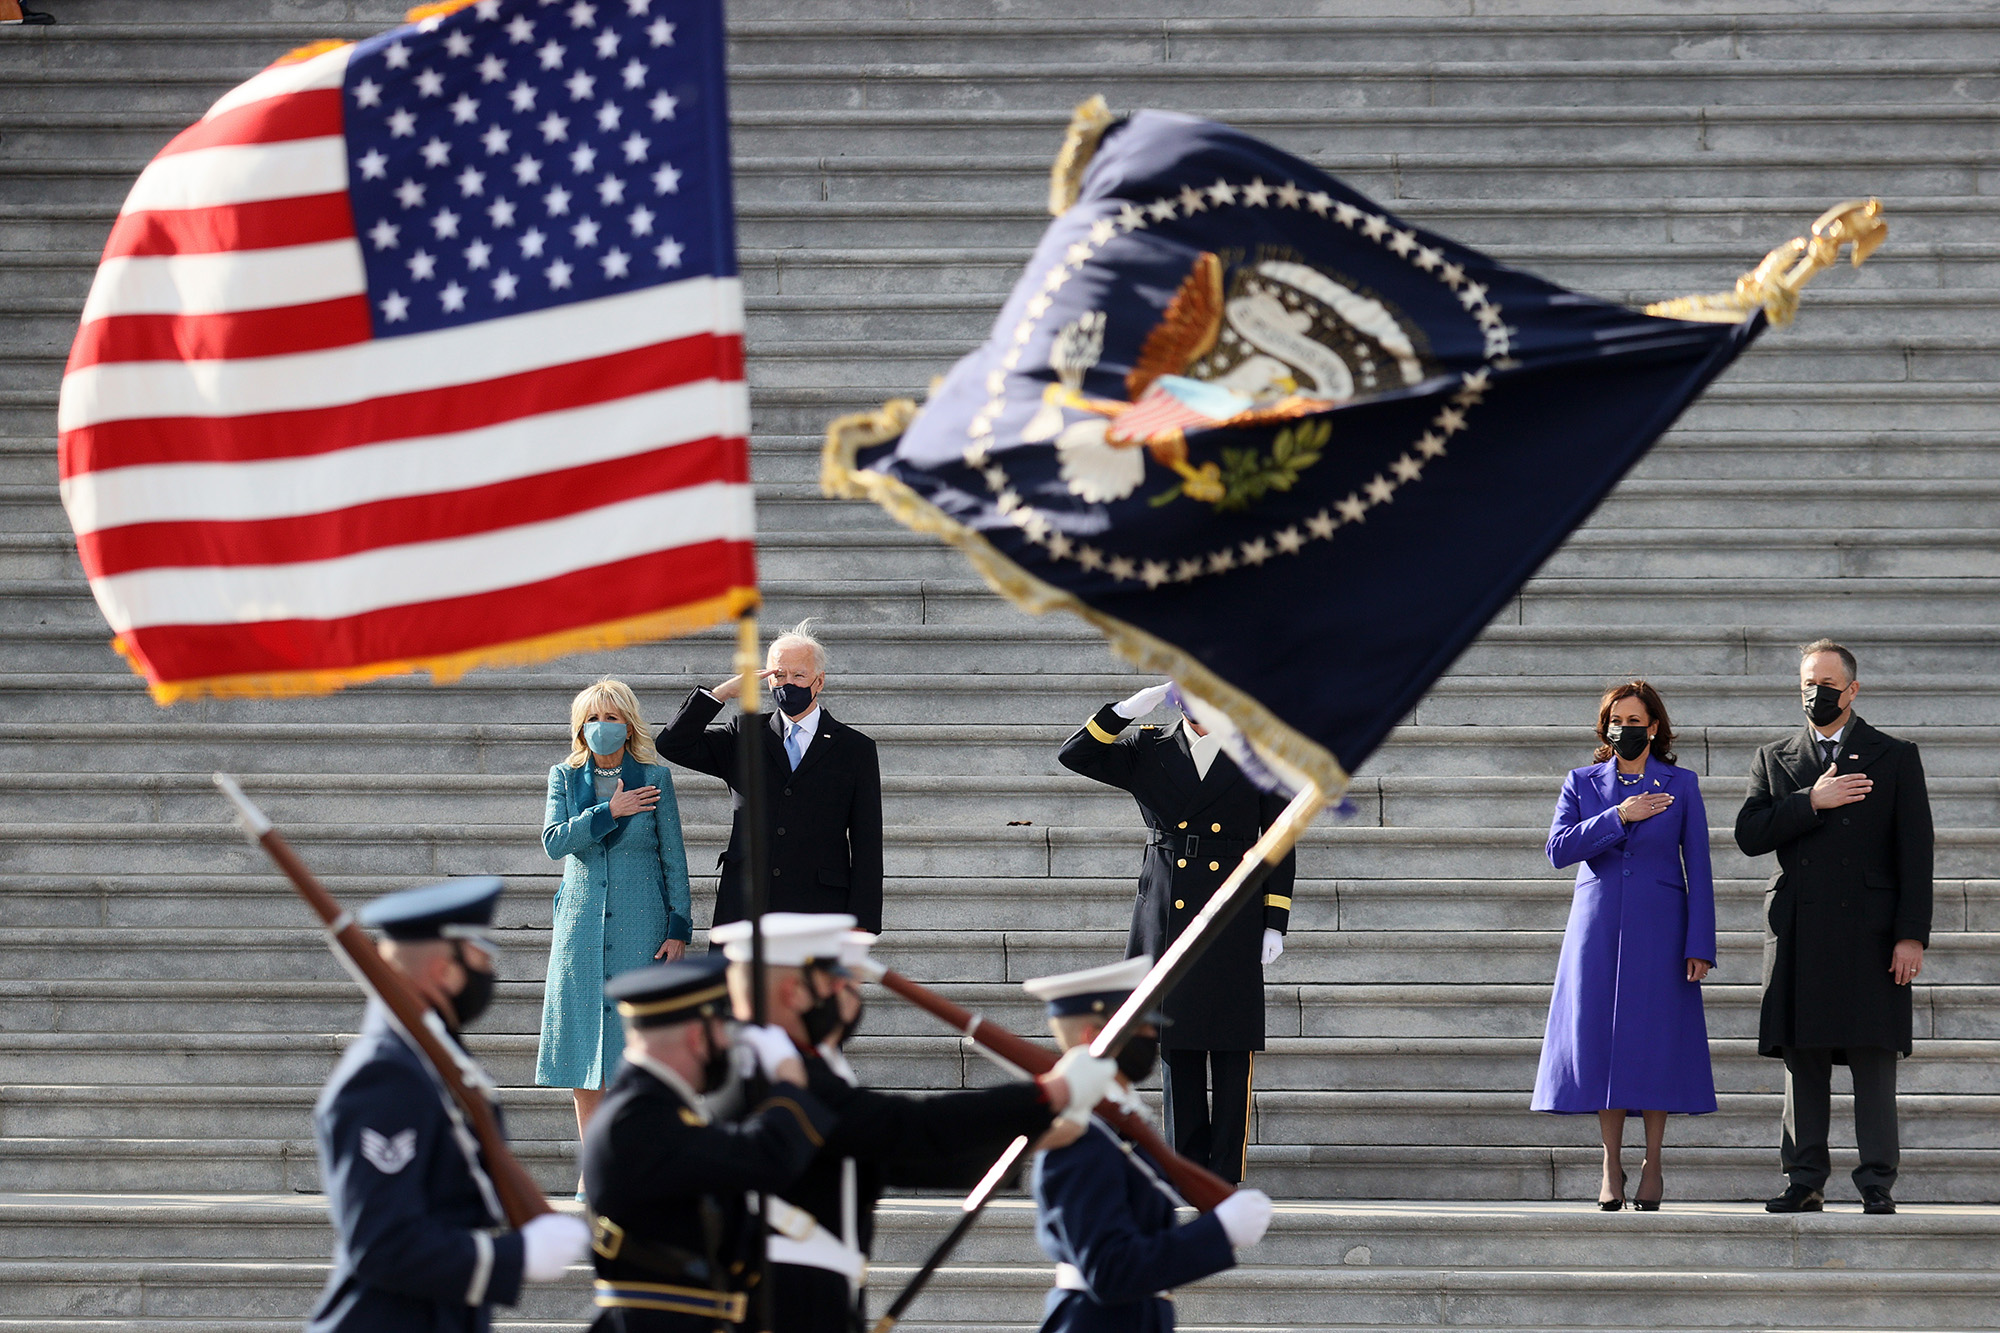 President Joe Biden, first lady Dr. Jill Biden, Vice President Kamala Harris and Douglas Emhoff, husband of Vice President Harris, attend a Pass-in-Review ceremony, hosted by the Joint Task Force-National Capital Region on the East Front of the U.S. Capitol after the 59th Presidential Inauguration on Jan. 20, 2021 in Washington. (Joe Raedle/Getty Images)